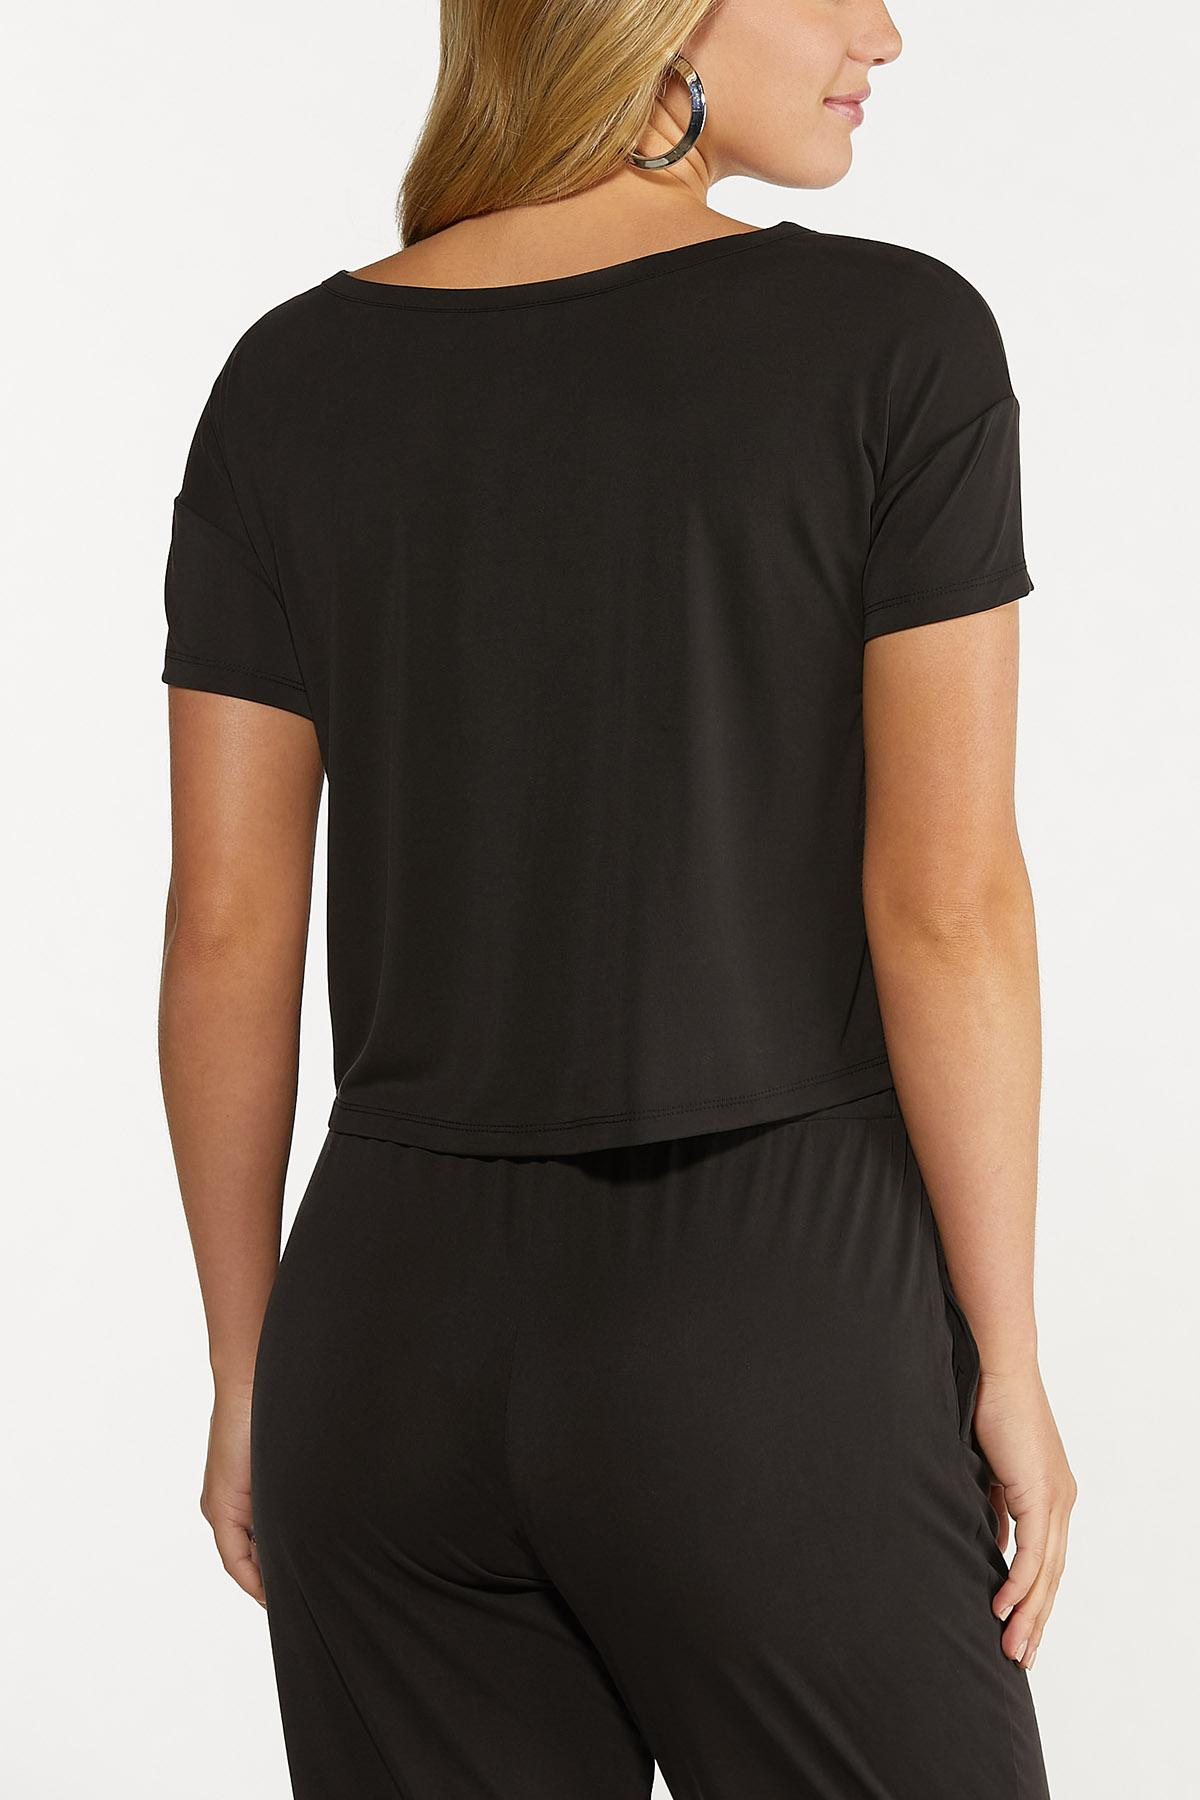 Solid Cutout Tee (Item #44635419)